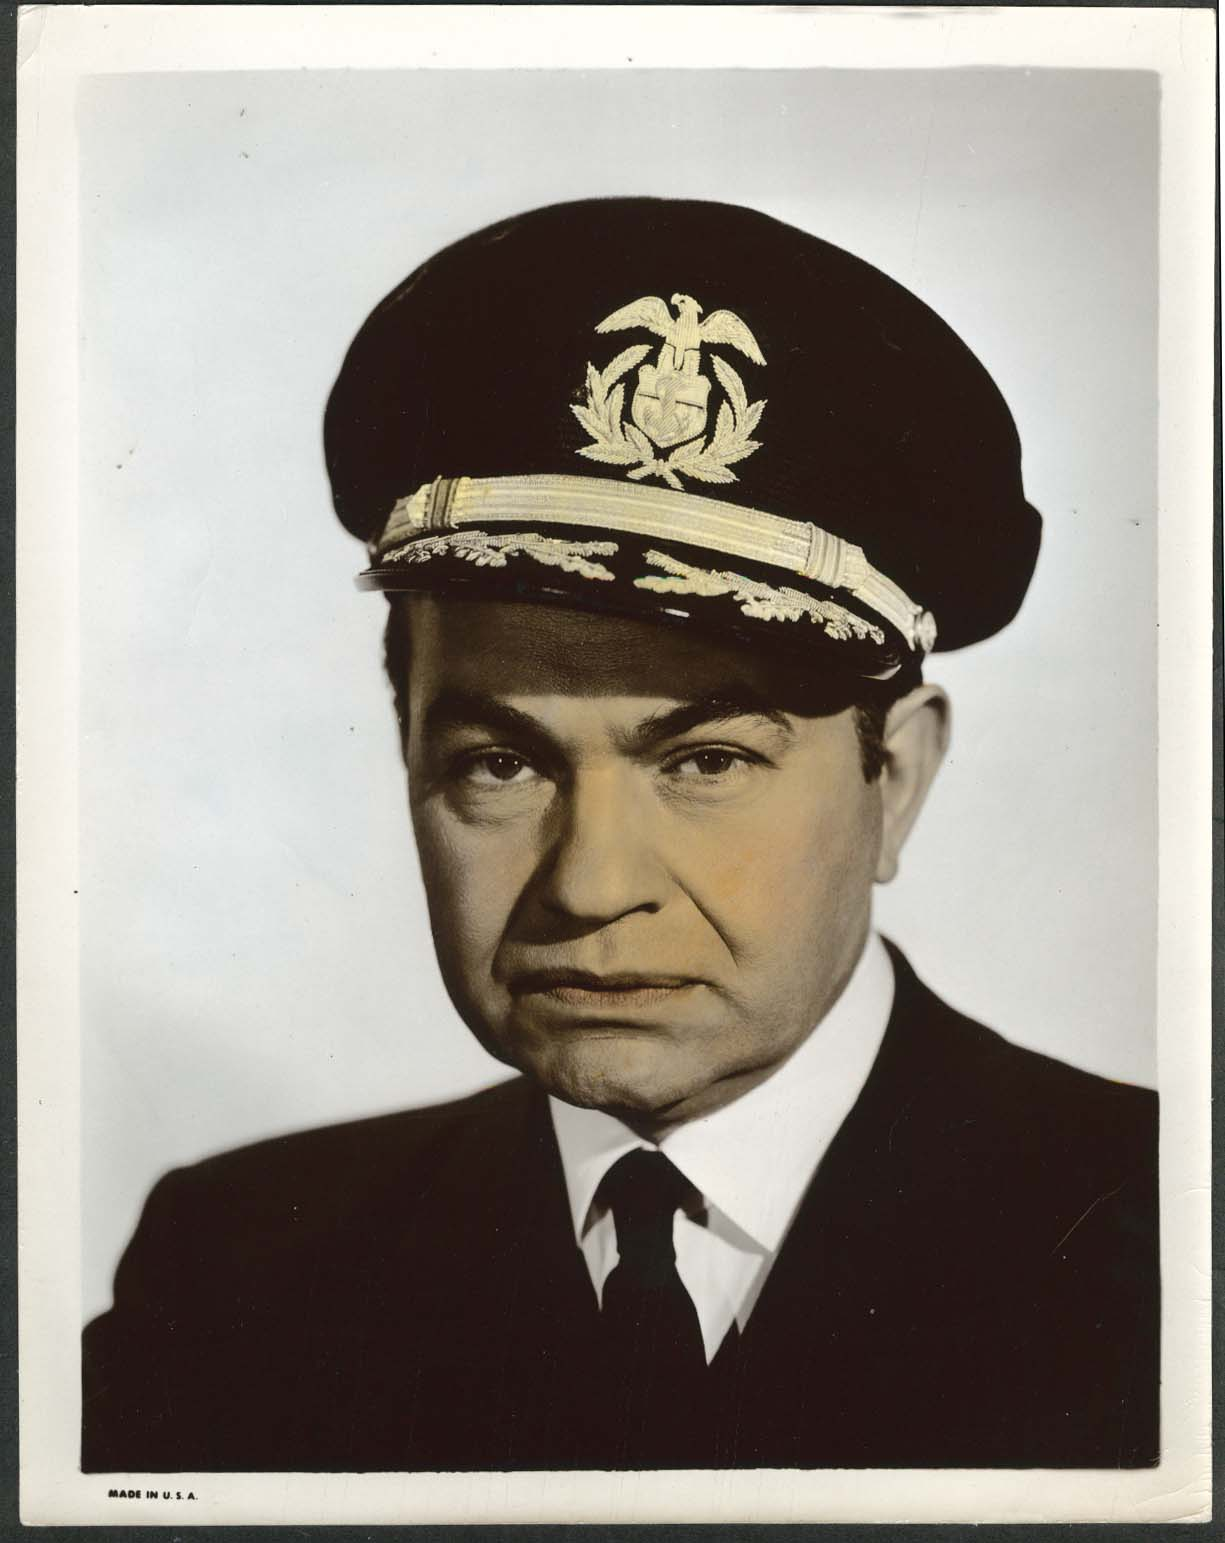 Image for Edward G Robinson Navy officer uniform 8x10 photograph colorized 1940s